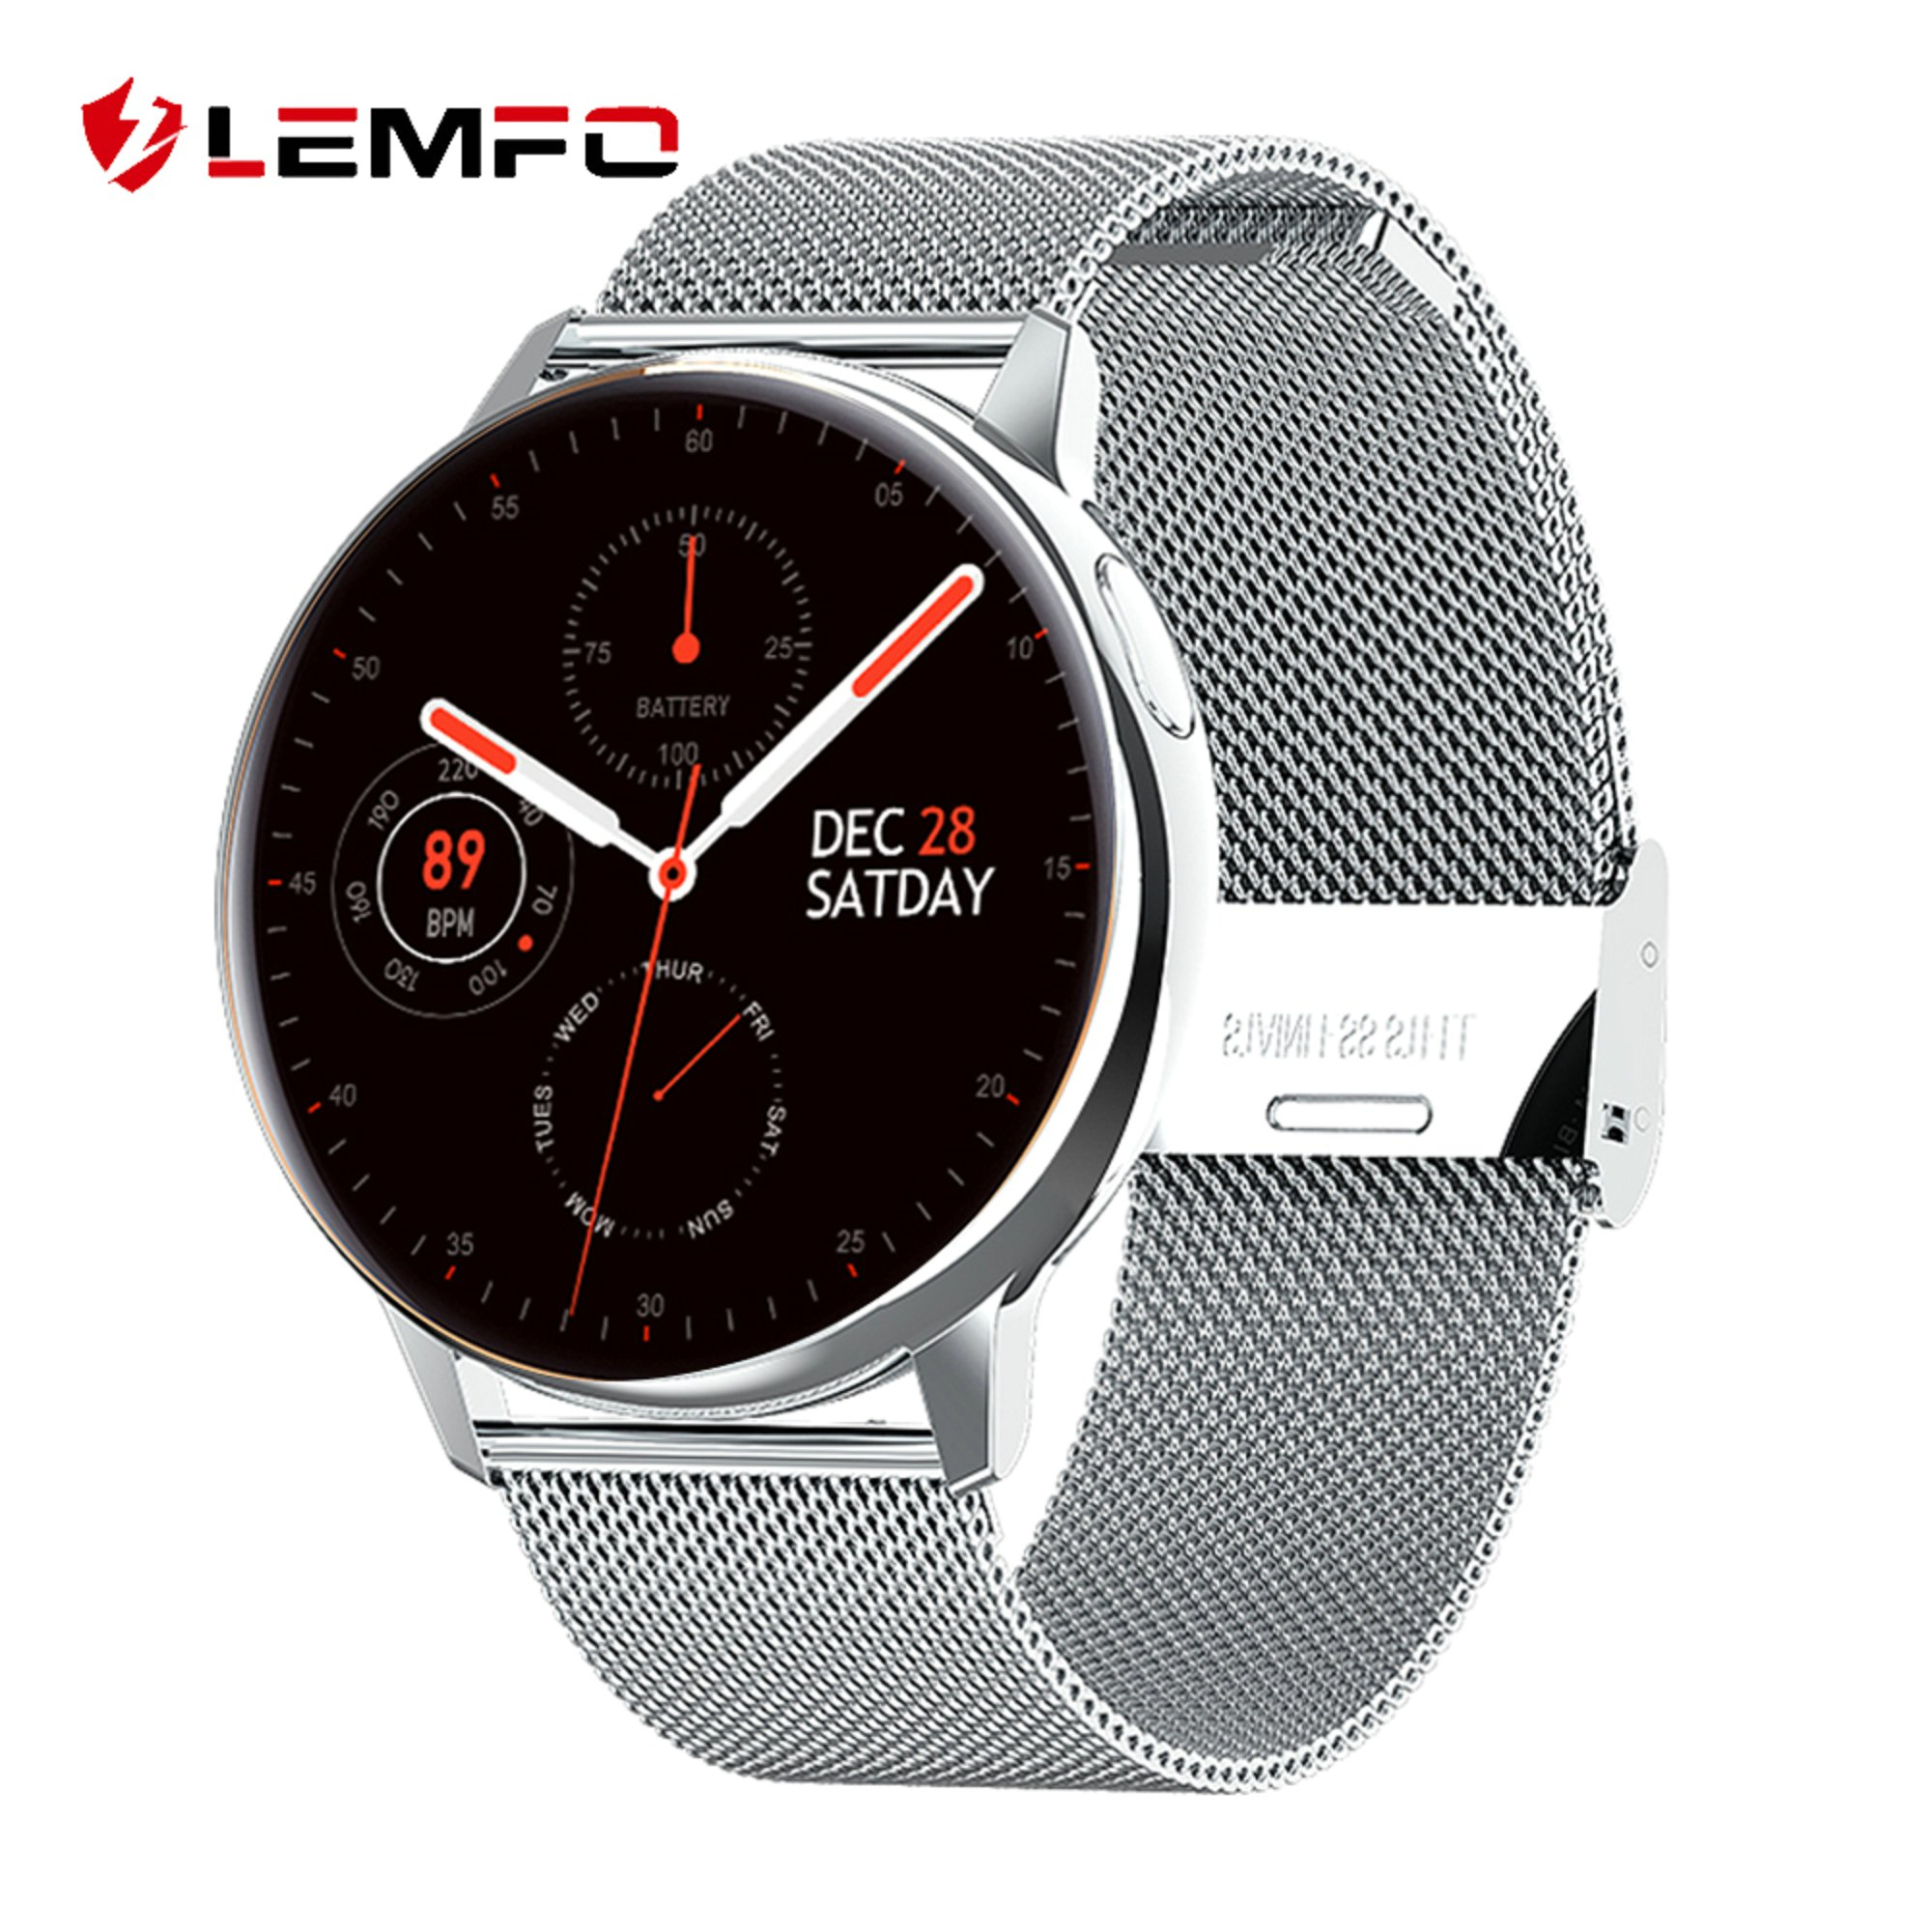 LEMFO Full Round Screen Women Smart Watch Men Body Temperature ECG Smartwatch 2020 Weather for Android IOS Samsung Phone